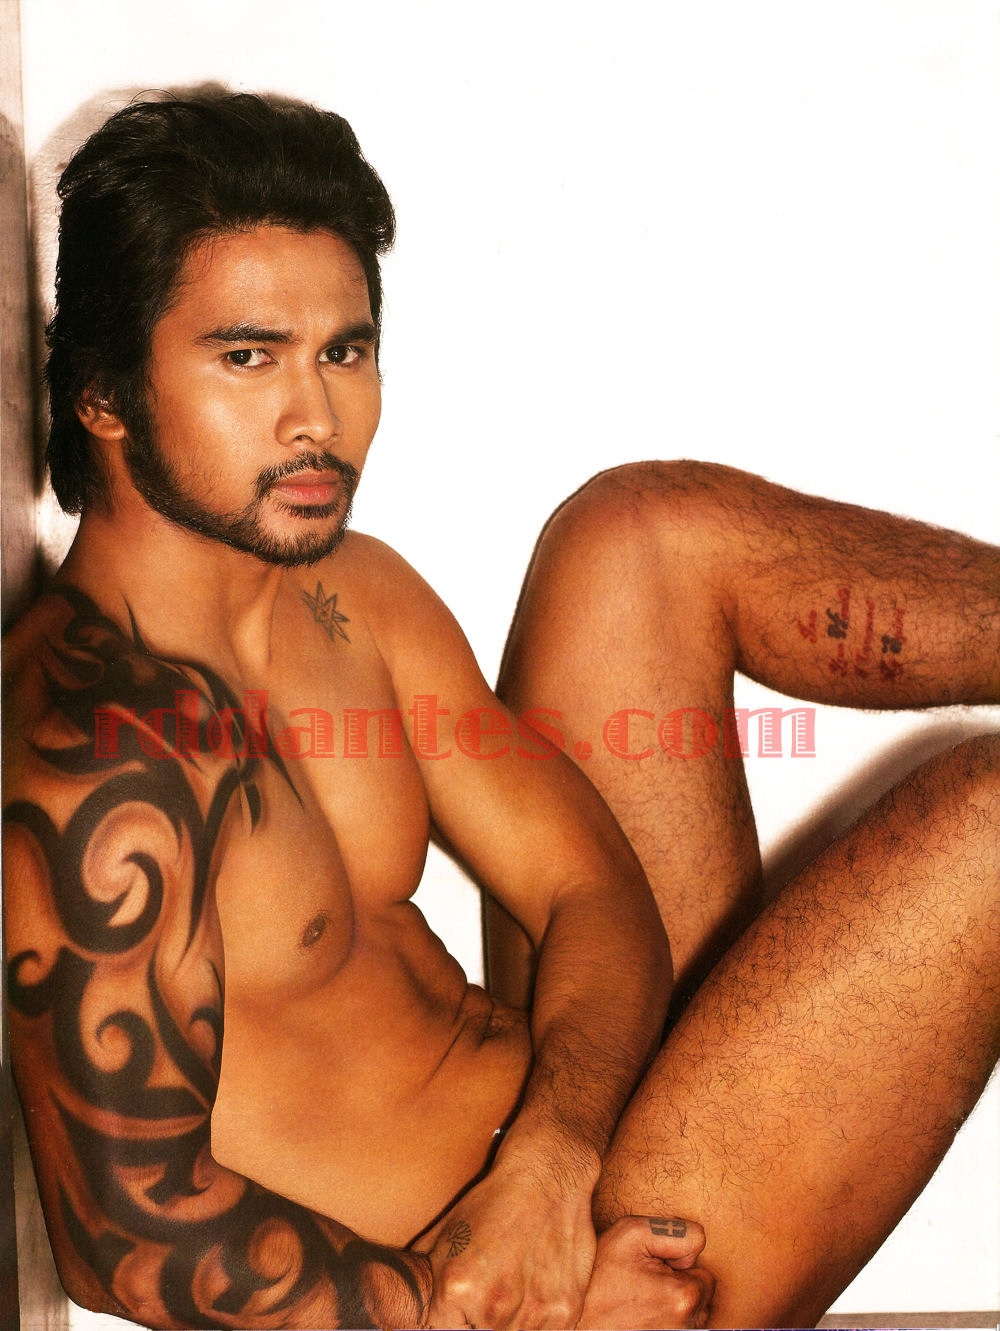 Hot pinoy naked hunk